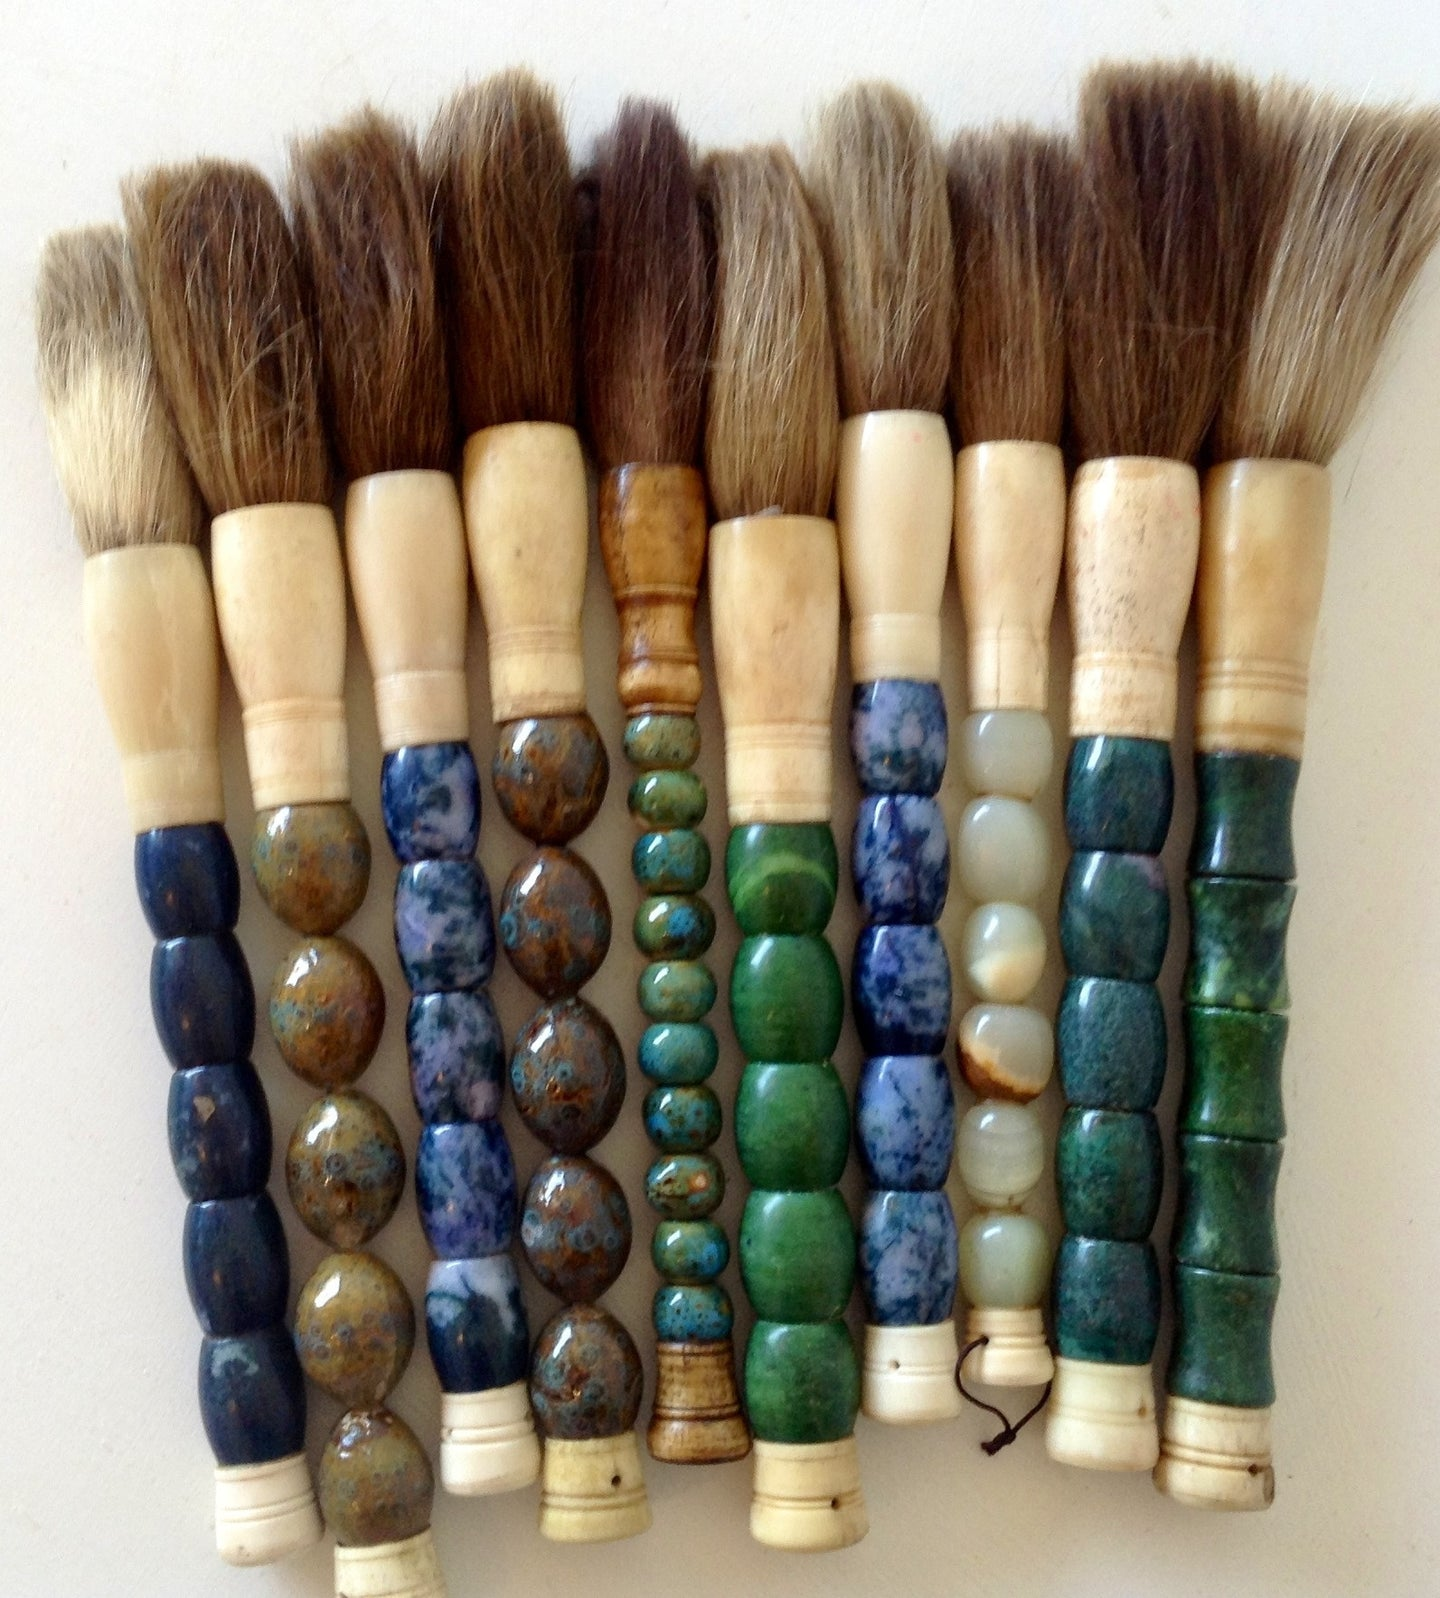 Small paint brushes - The Sweetwood Collection